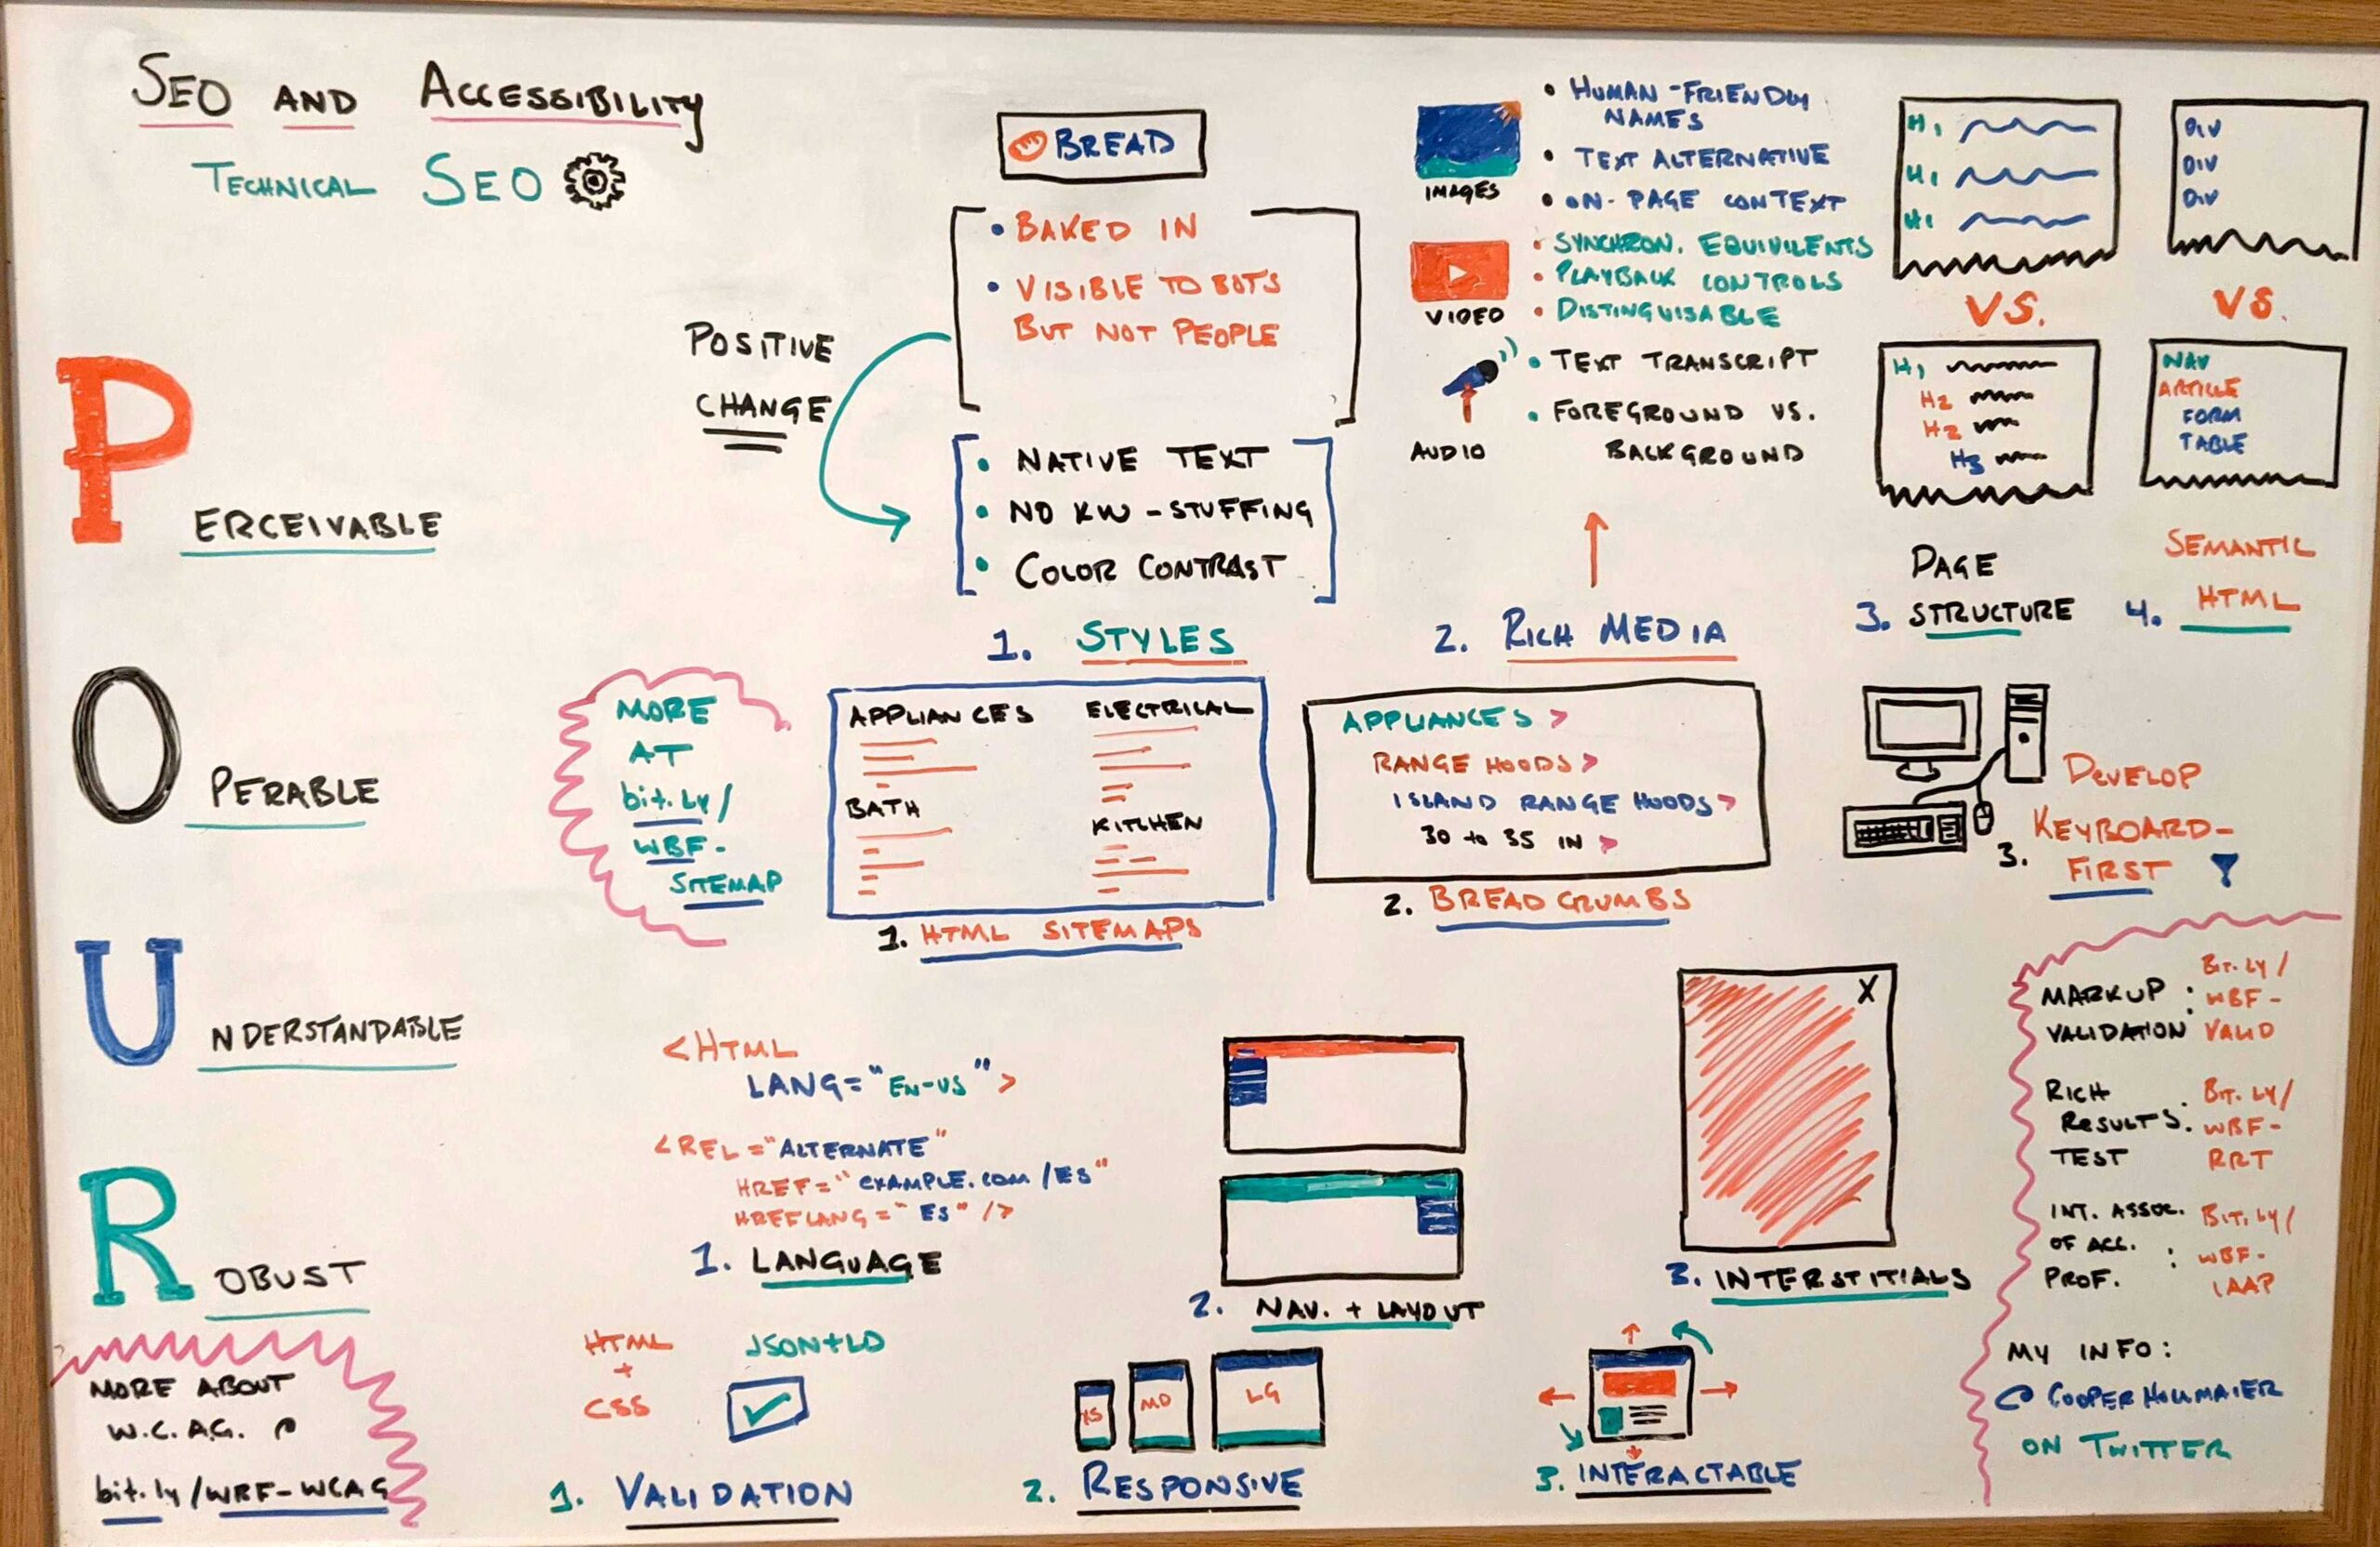 Photo of the whiteboard with handwritten notes on how technical SEOs can focus on accessibility.